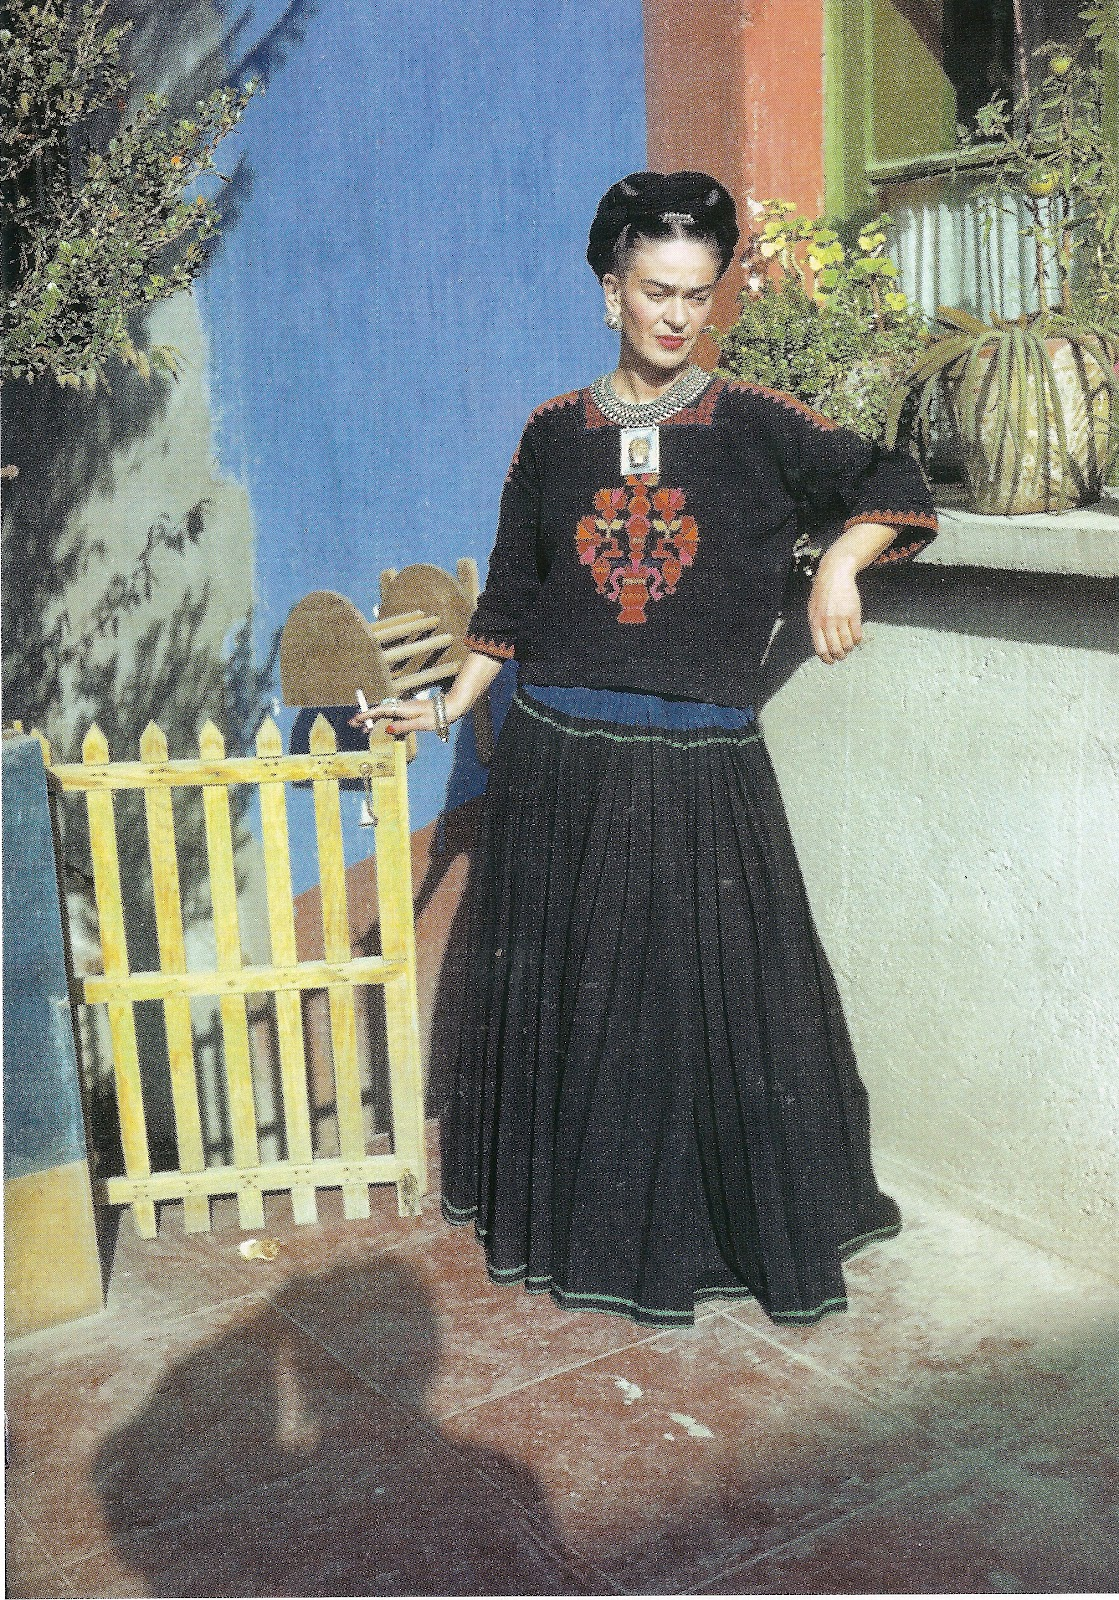 Lost and Found Images: Frida Kahlo: style icon